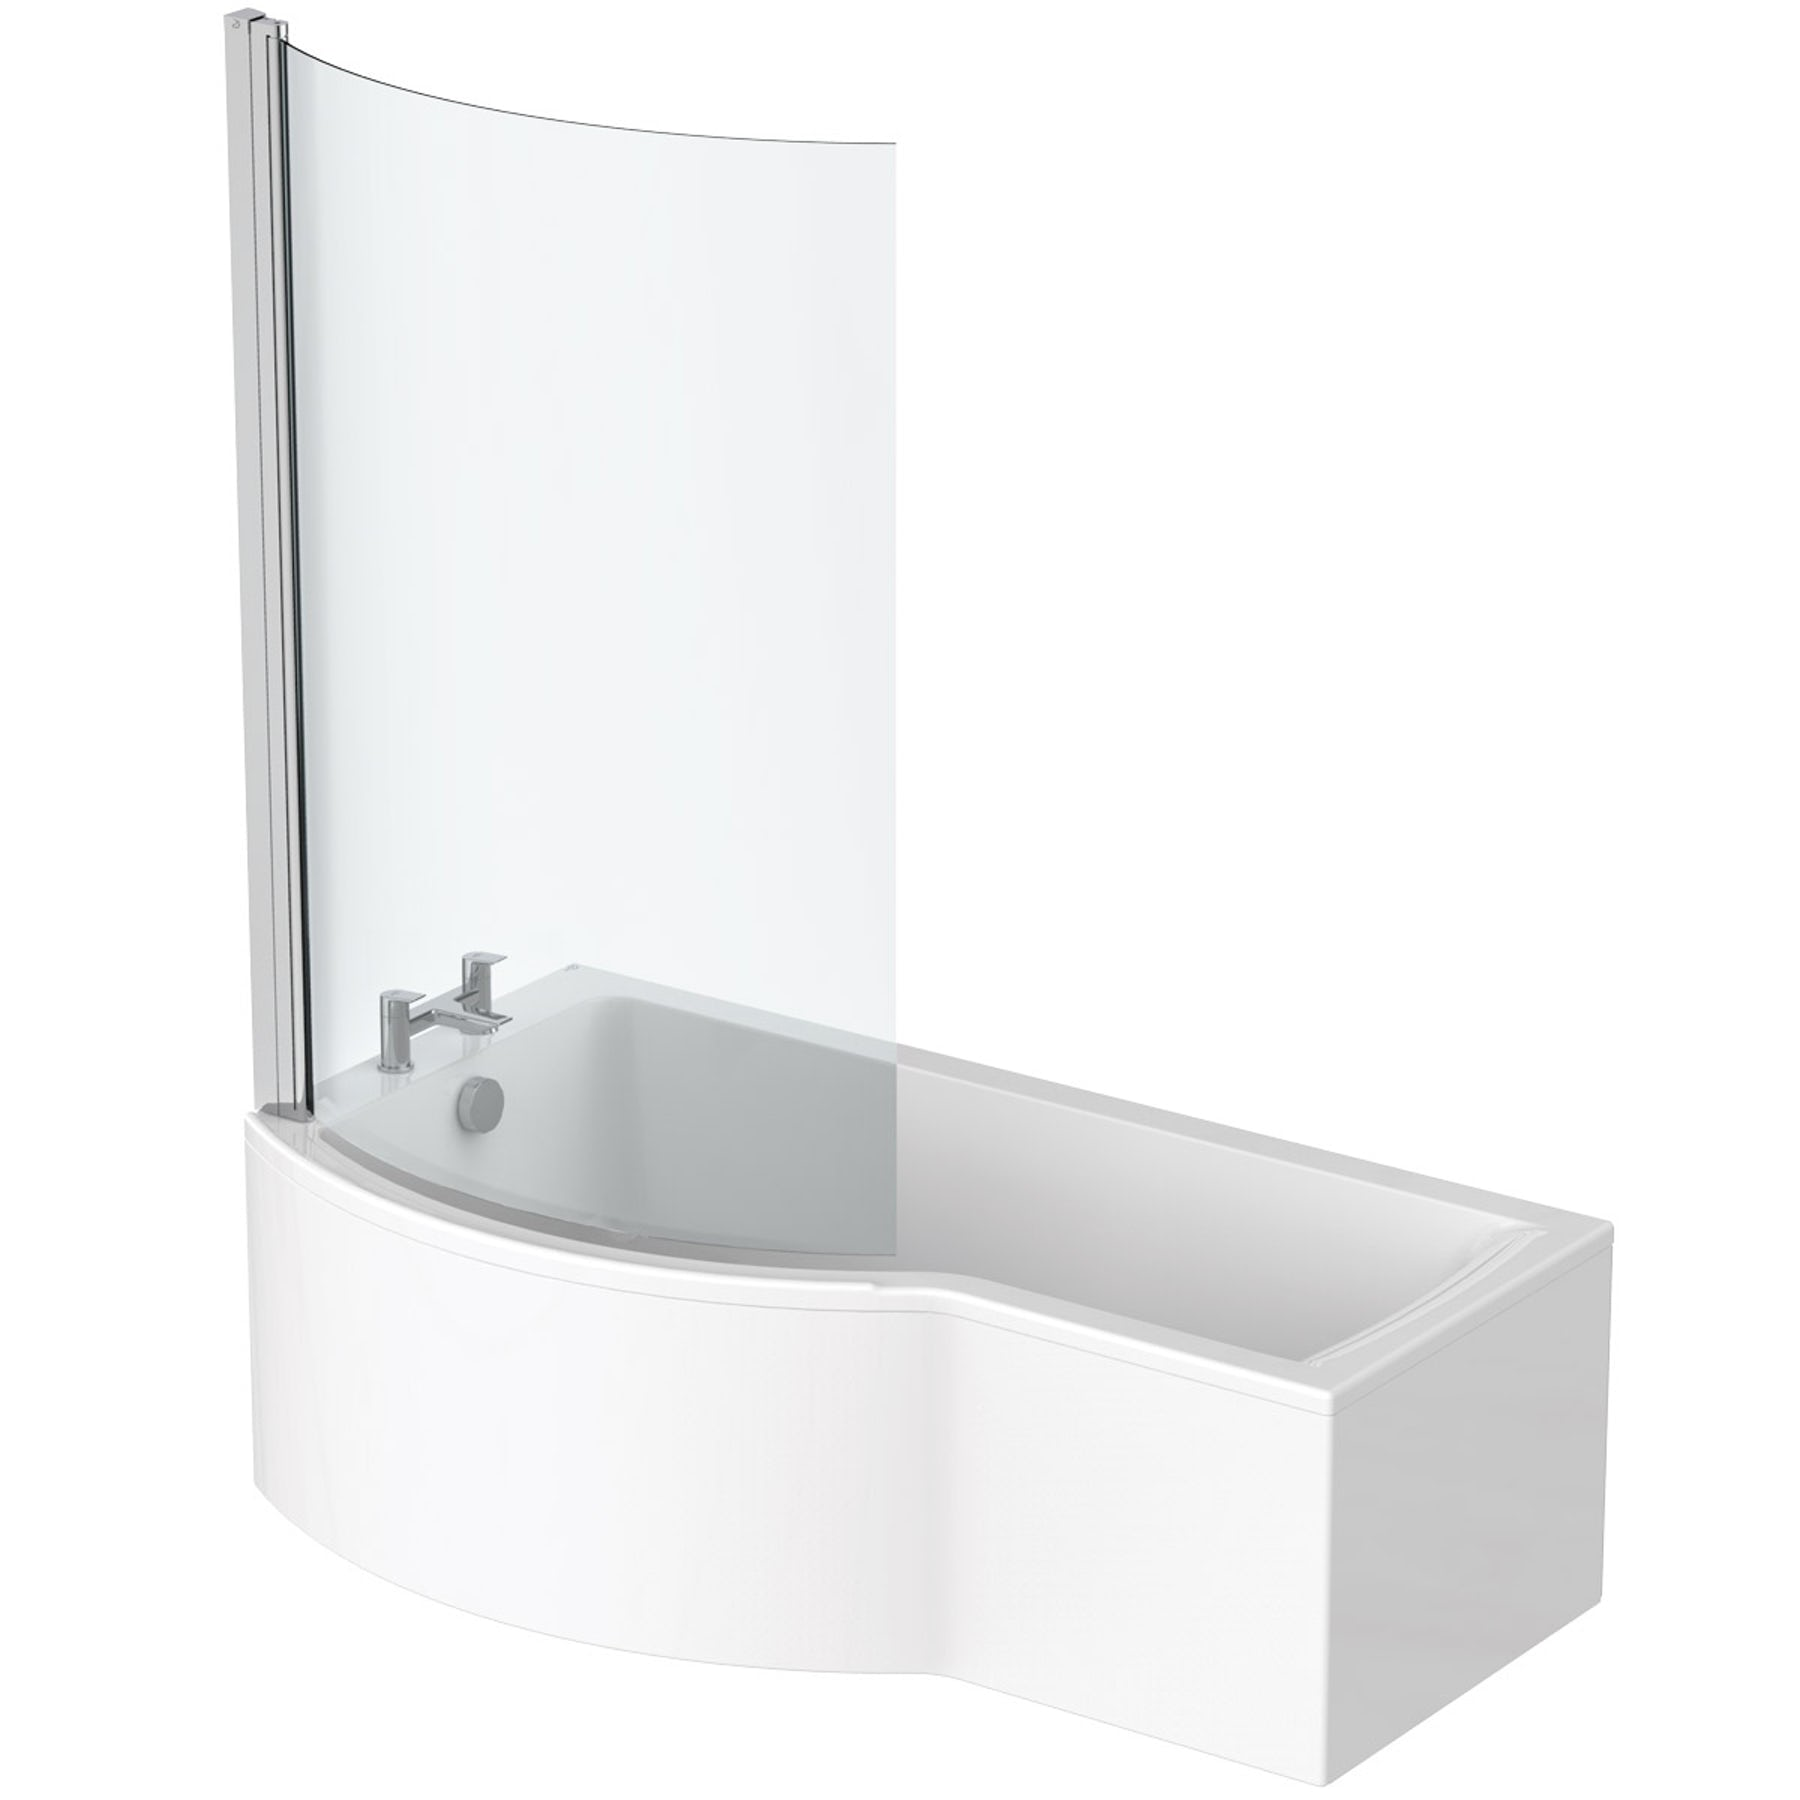 Ideal Standard Concept Air Left Hand Shower Bath With Bath Screen And Front Panel 1700 X 900